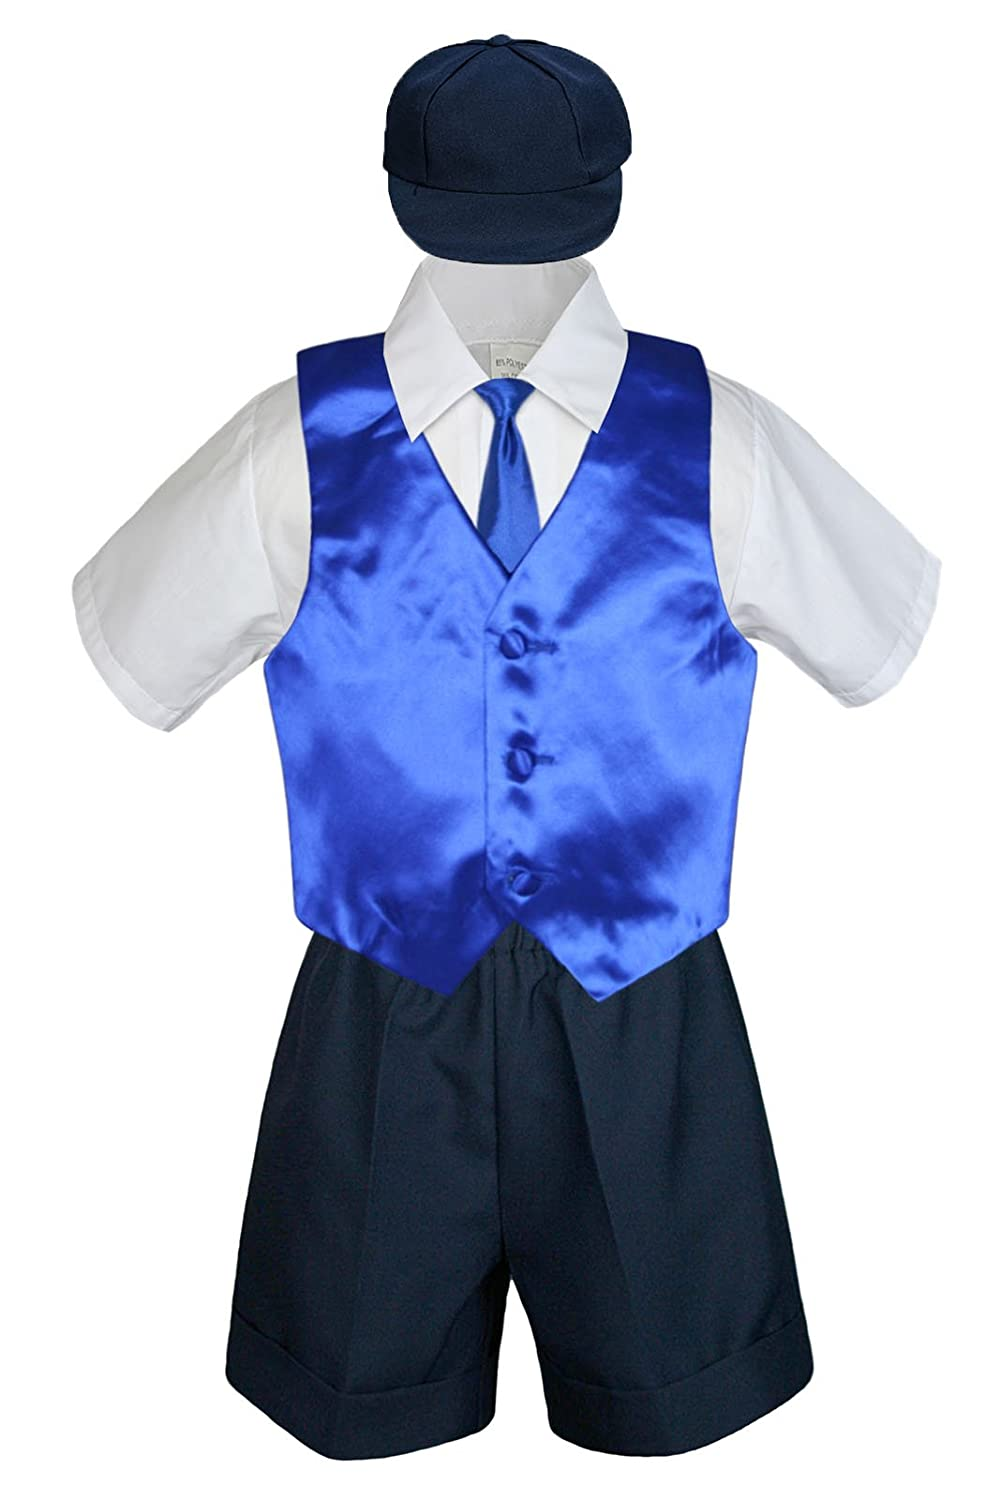 Leadertux 5pc Baby Toddler Boys Royal Blue Vest Necktie Set Navy Shorts Hat S-4T (XL:(18-24 months))